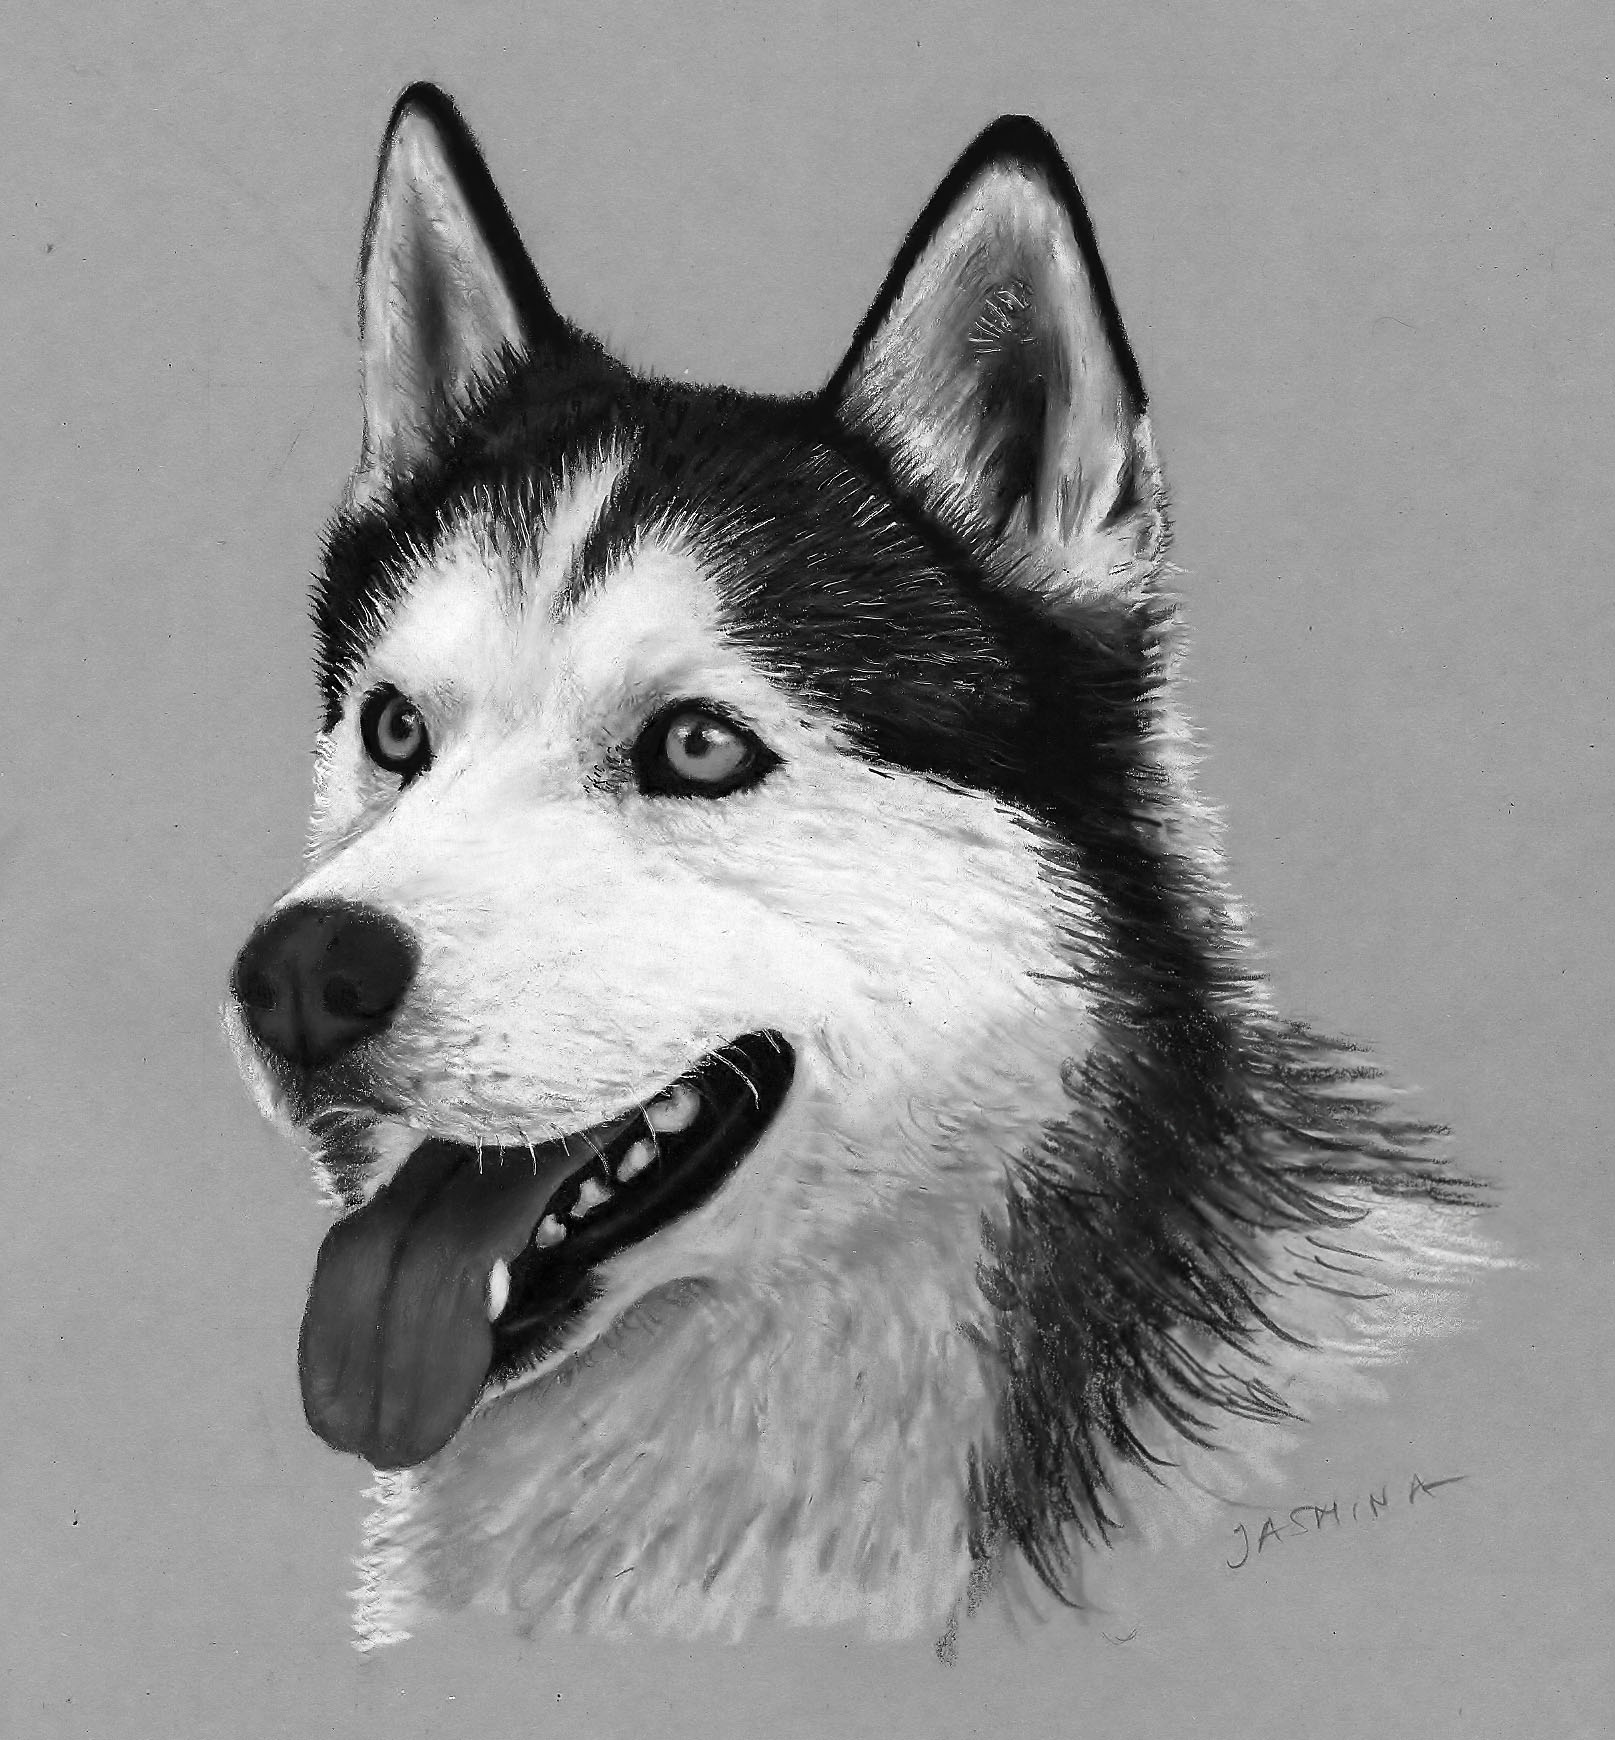 drawings of creatures 40 realistic animal pencil drawings creatures drawings of 1 1